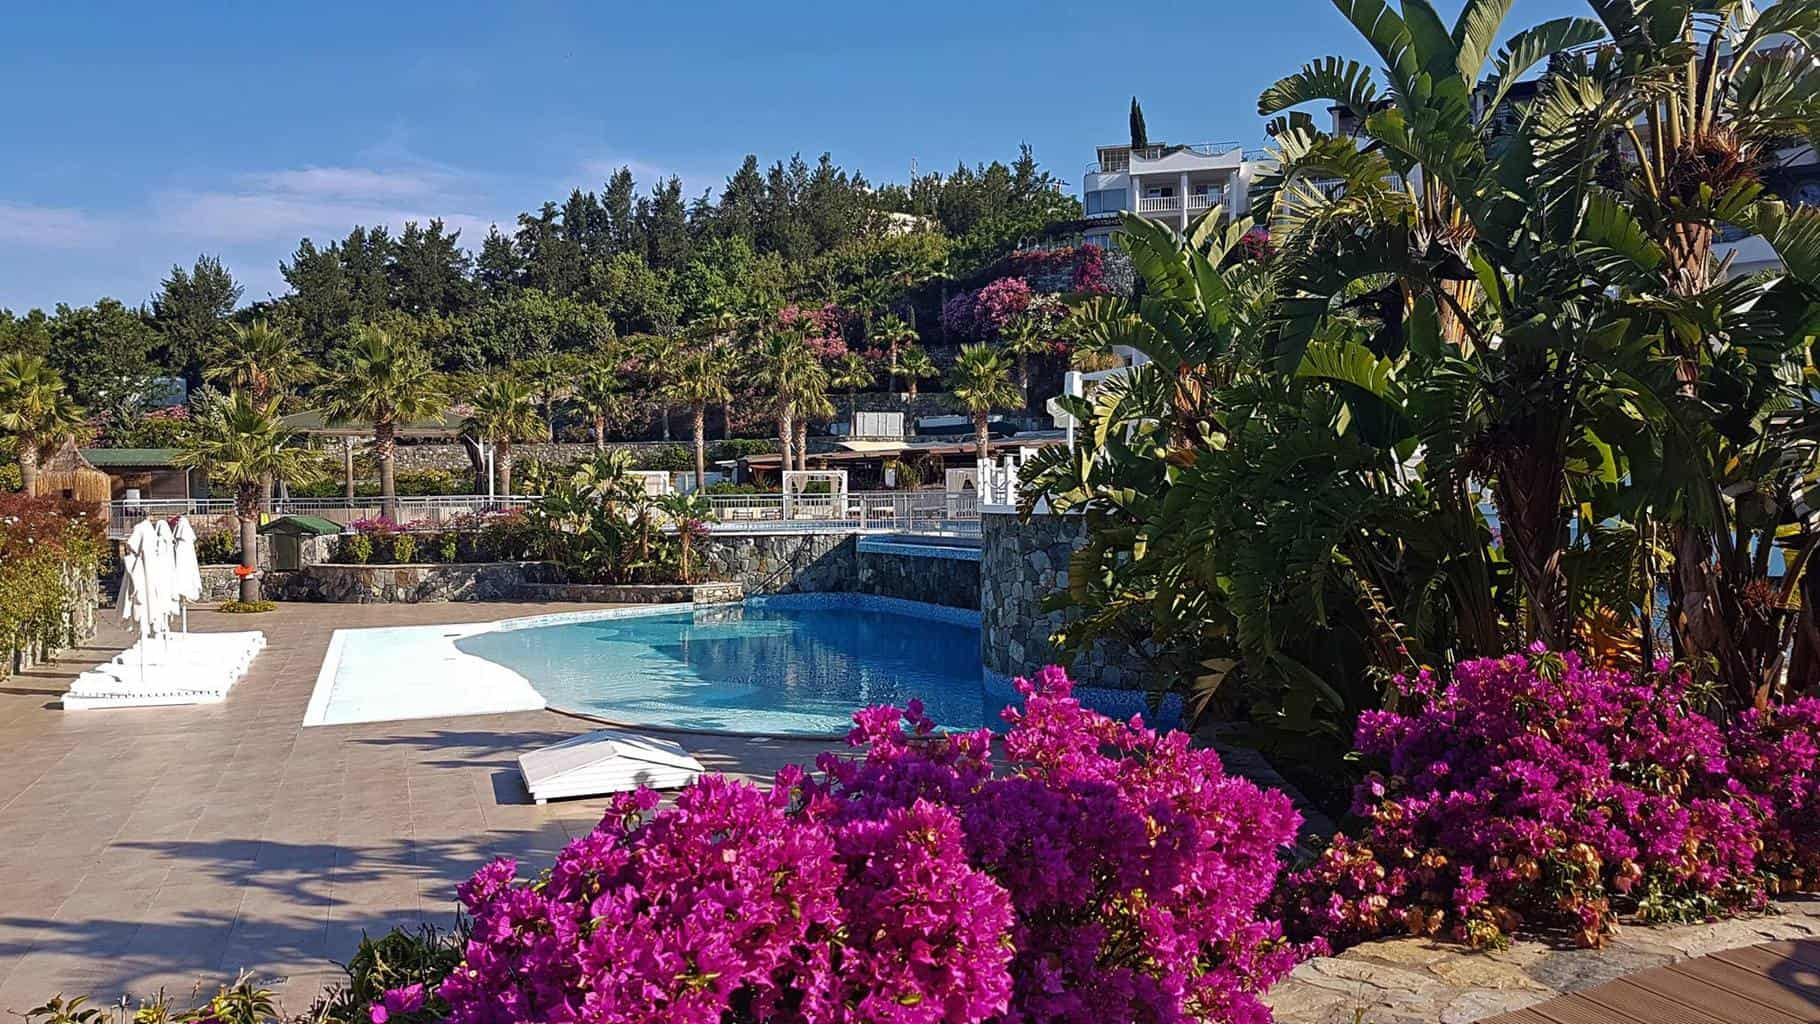 Detox and Wellness at the Sianji Wellness Resort Bodrum